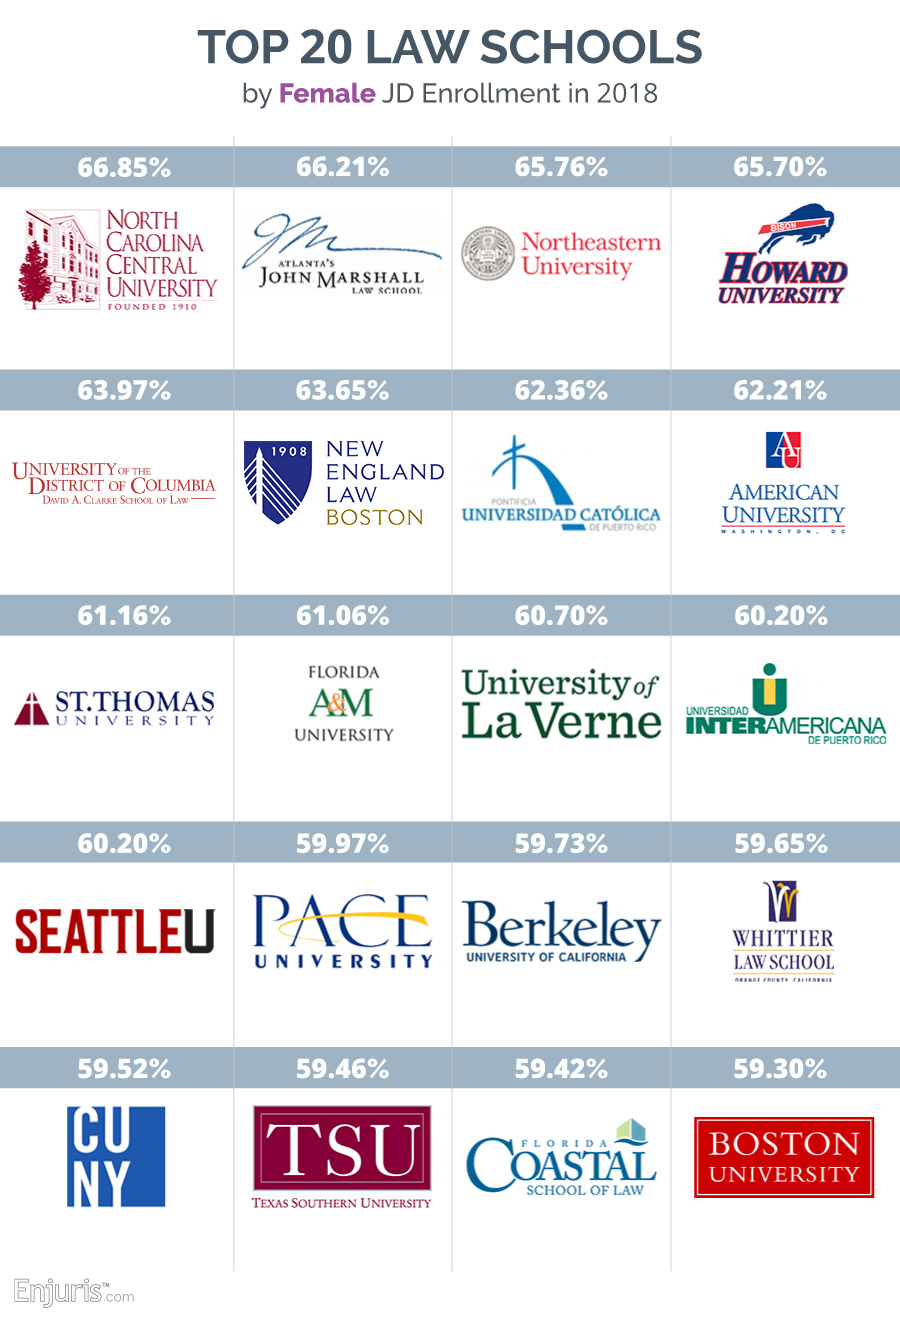 Top 20 law schools by female enrollment